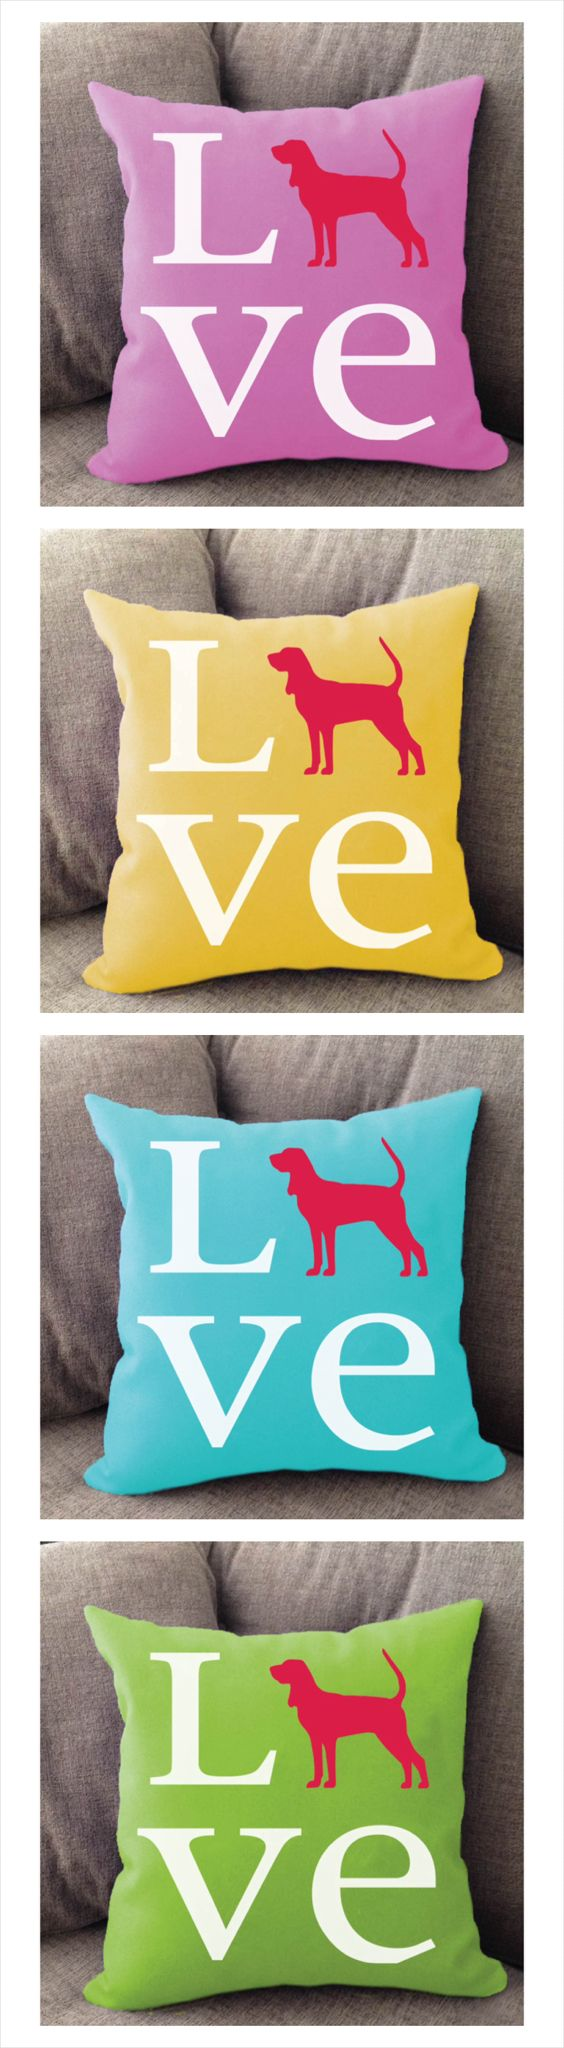 Coonhound Love pillow. Offered in multiple colors and 50+ dog breeds. Cover is machine washable and Made in USA.